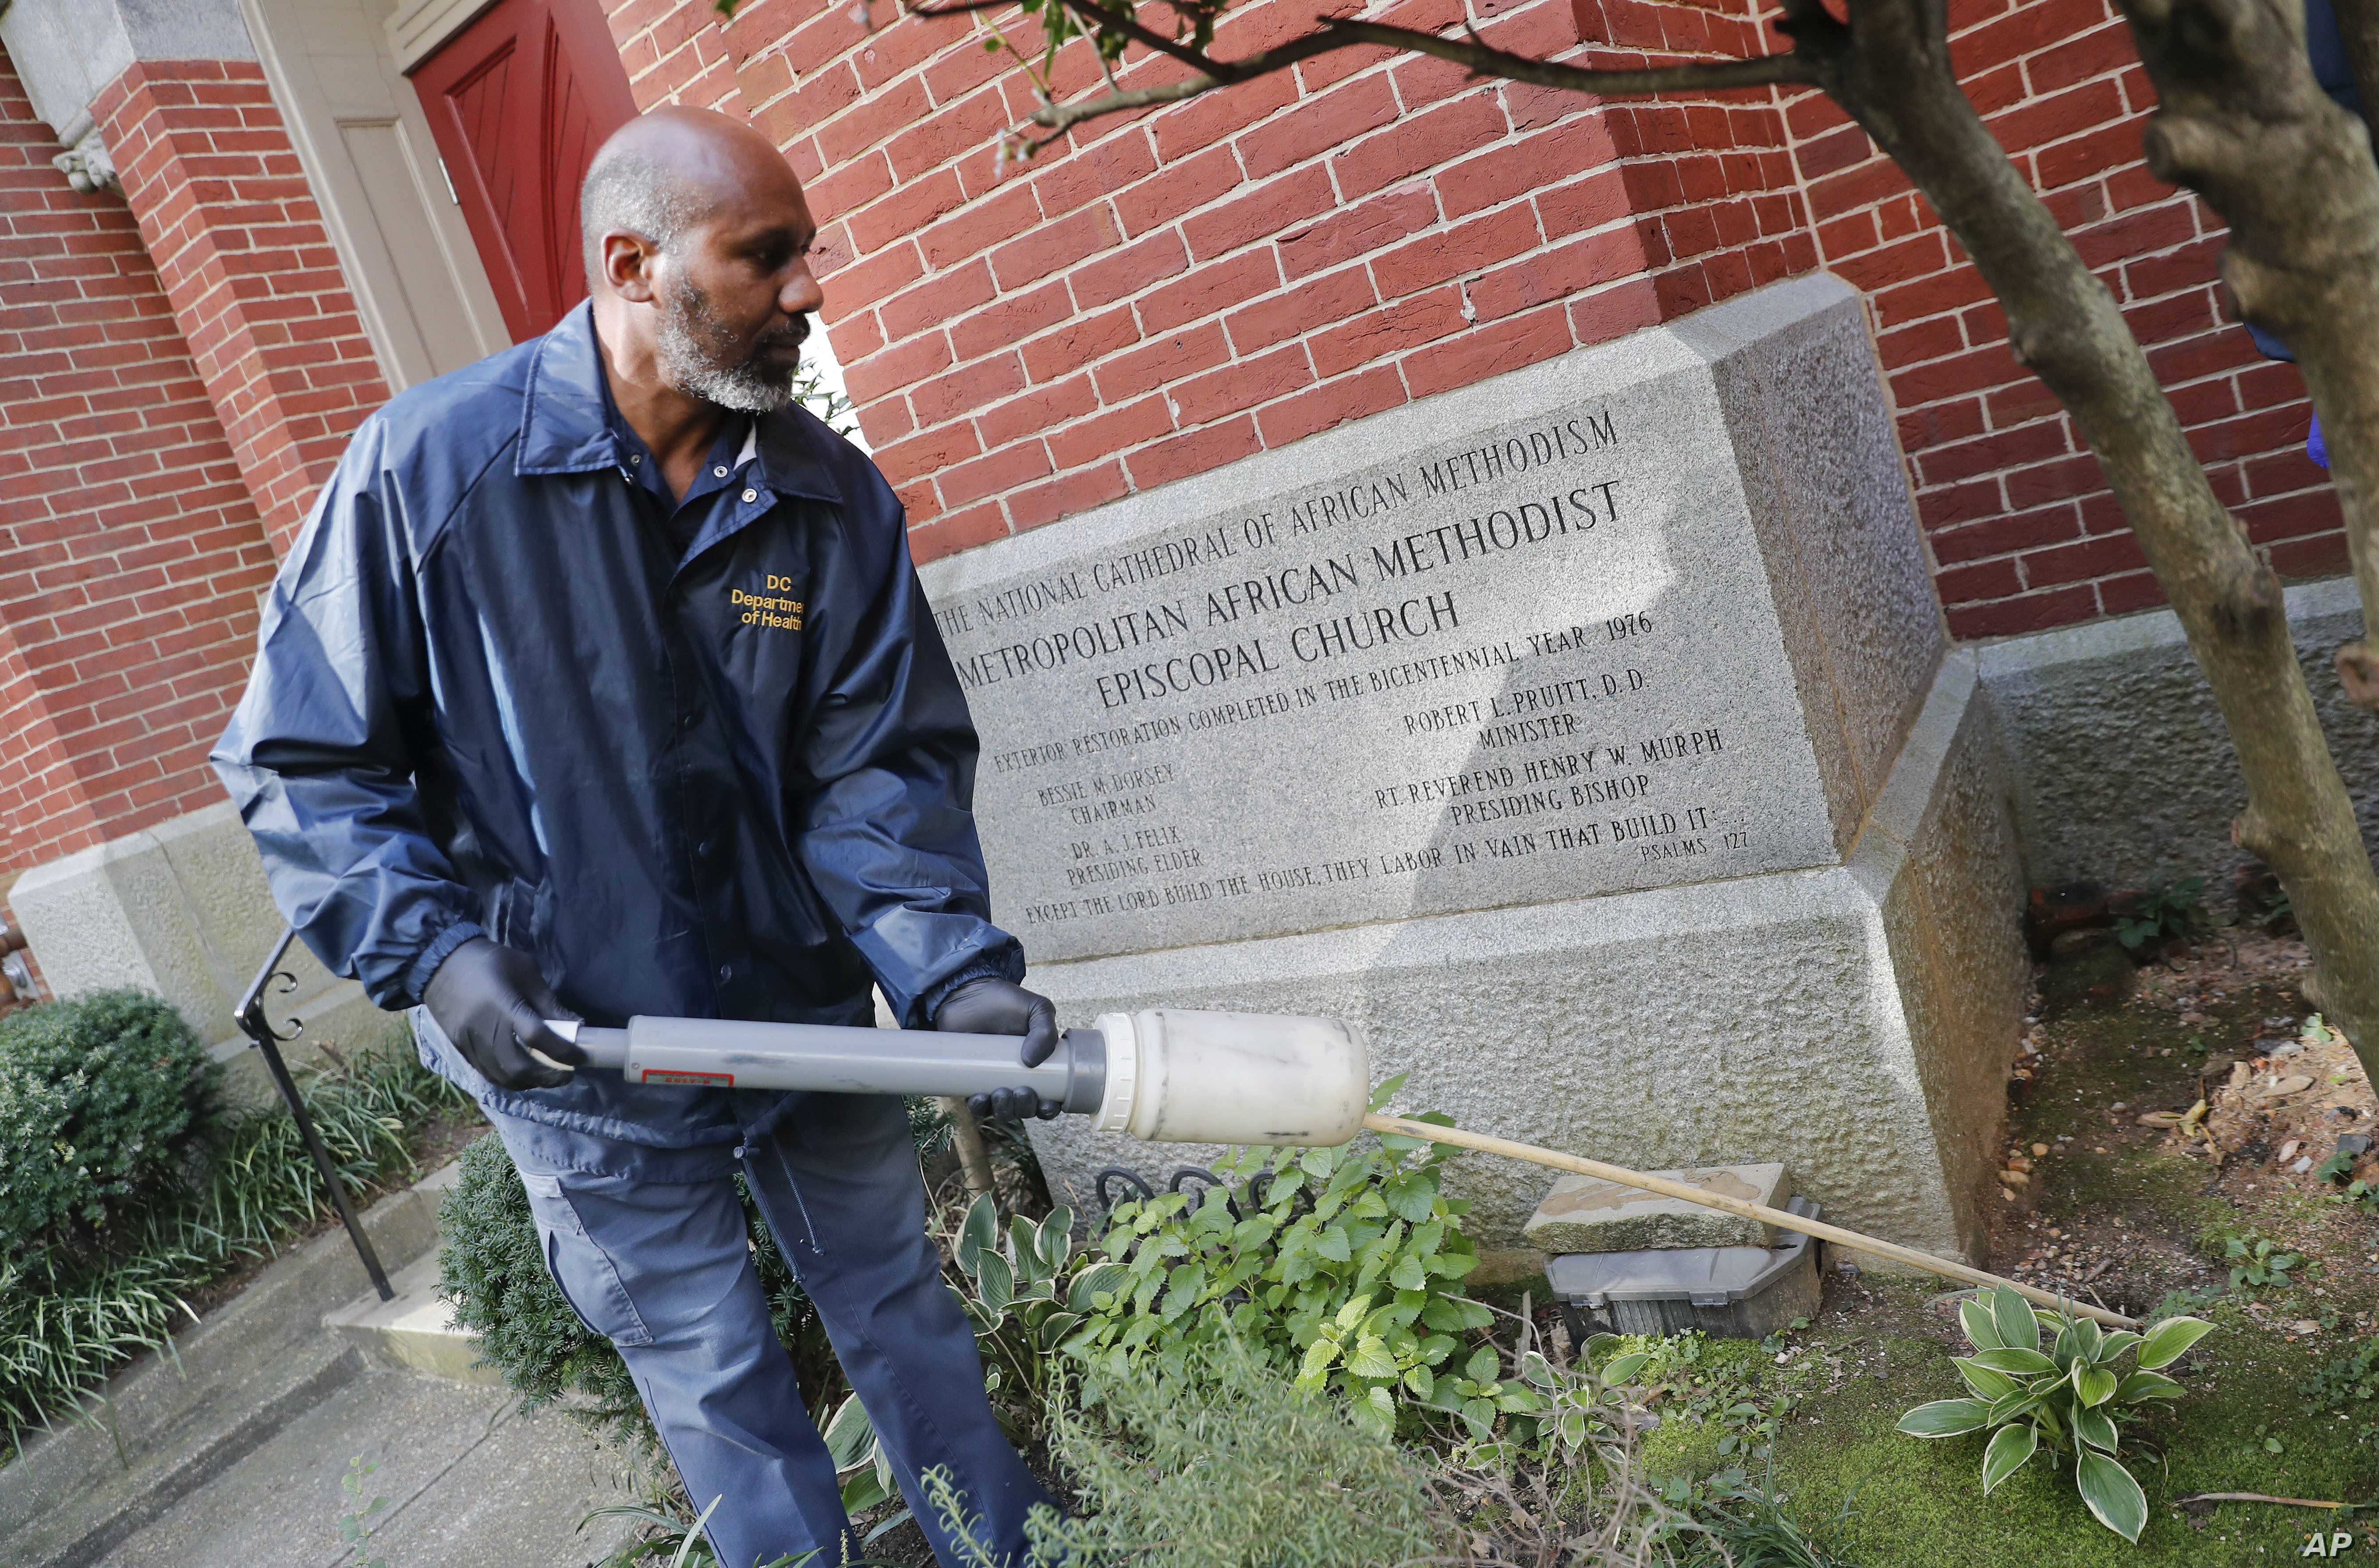 Pest Control Officer Gregory Cornes, from the D.C. Department of Health's Rodent Control Division, uses a duster to pump poison into rat burrows, found on the grounds of Metropolitan African Methodist Episcopal Church in downtown Washington, Oct. 17,...